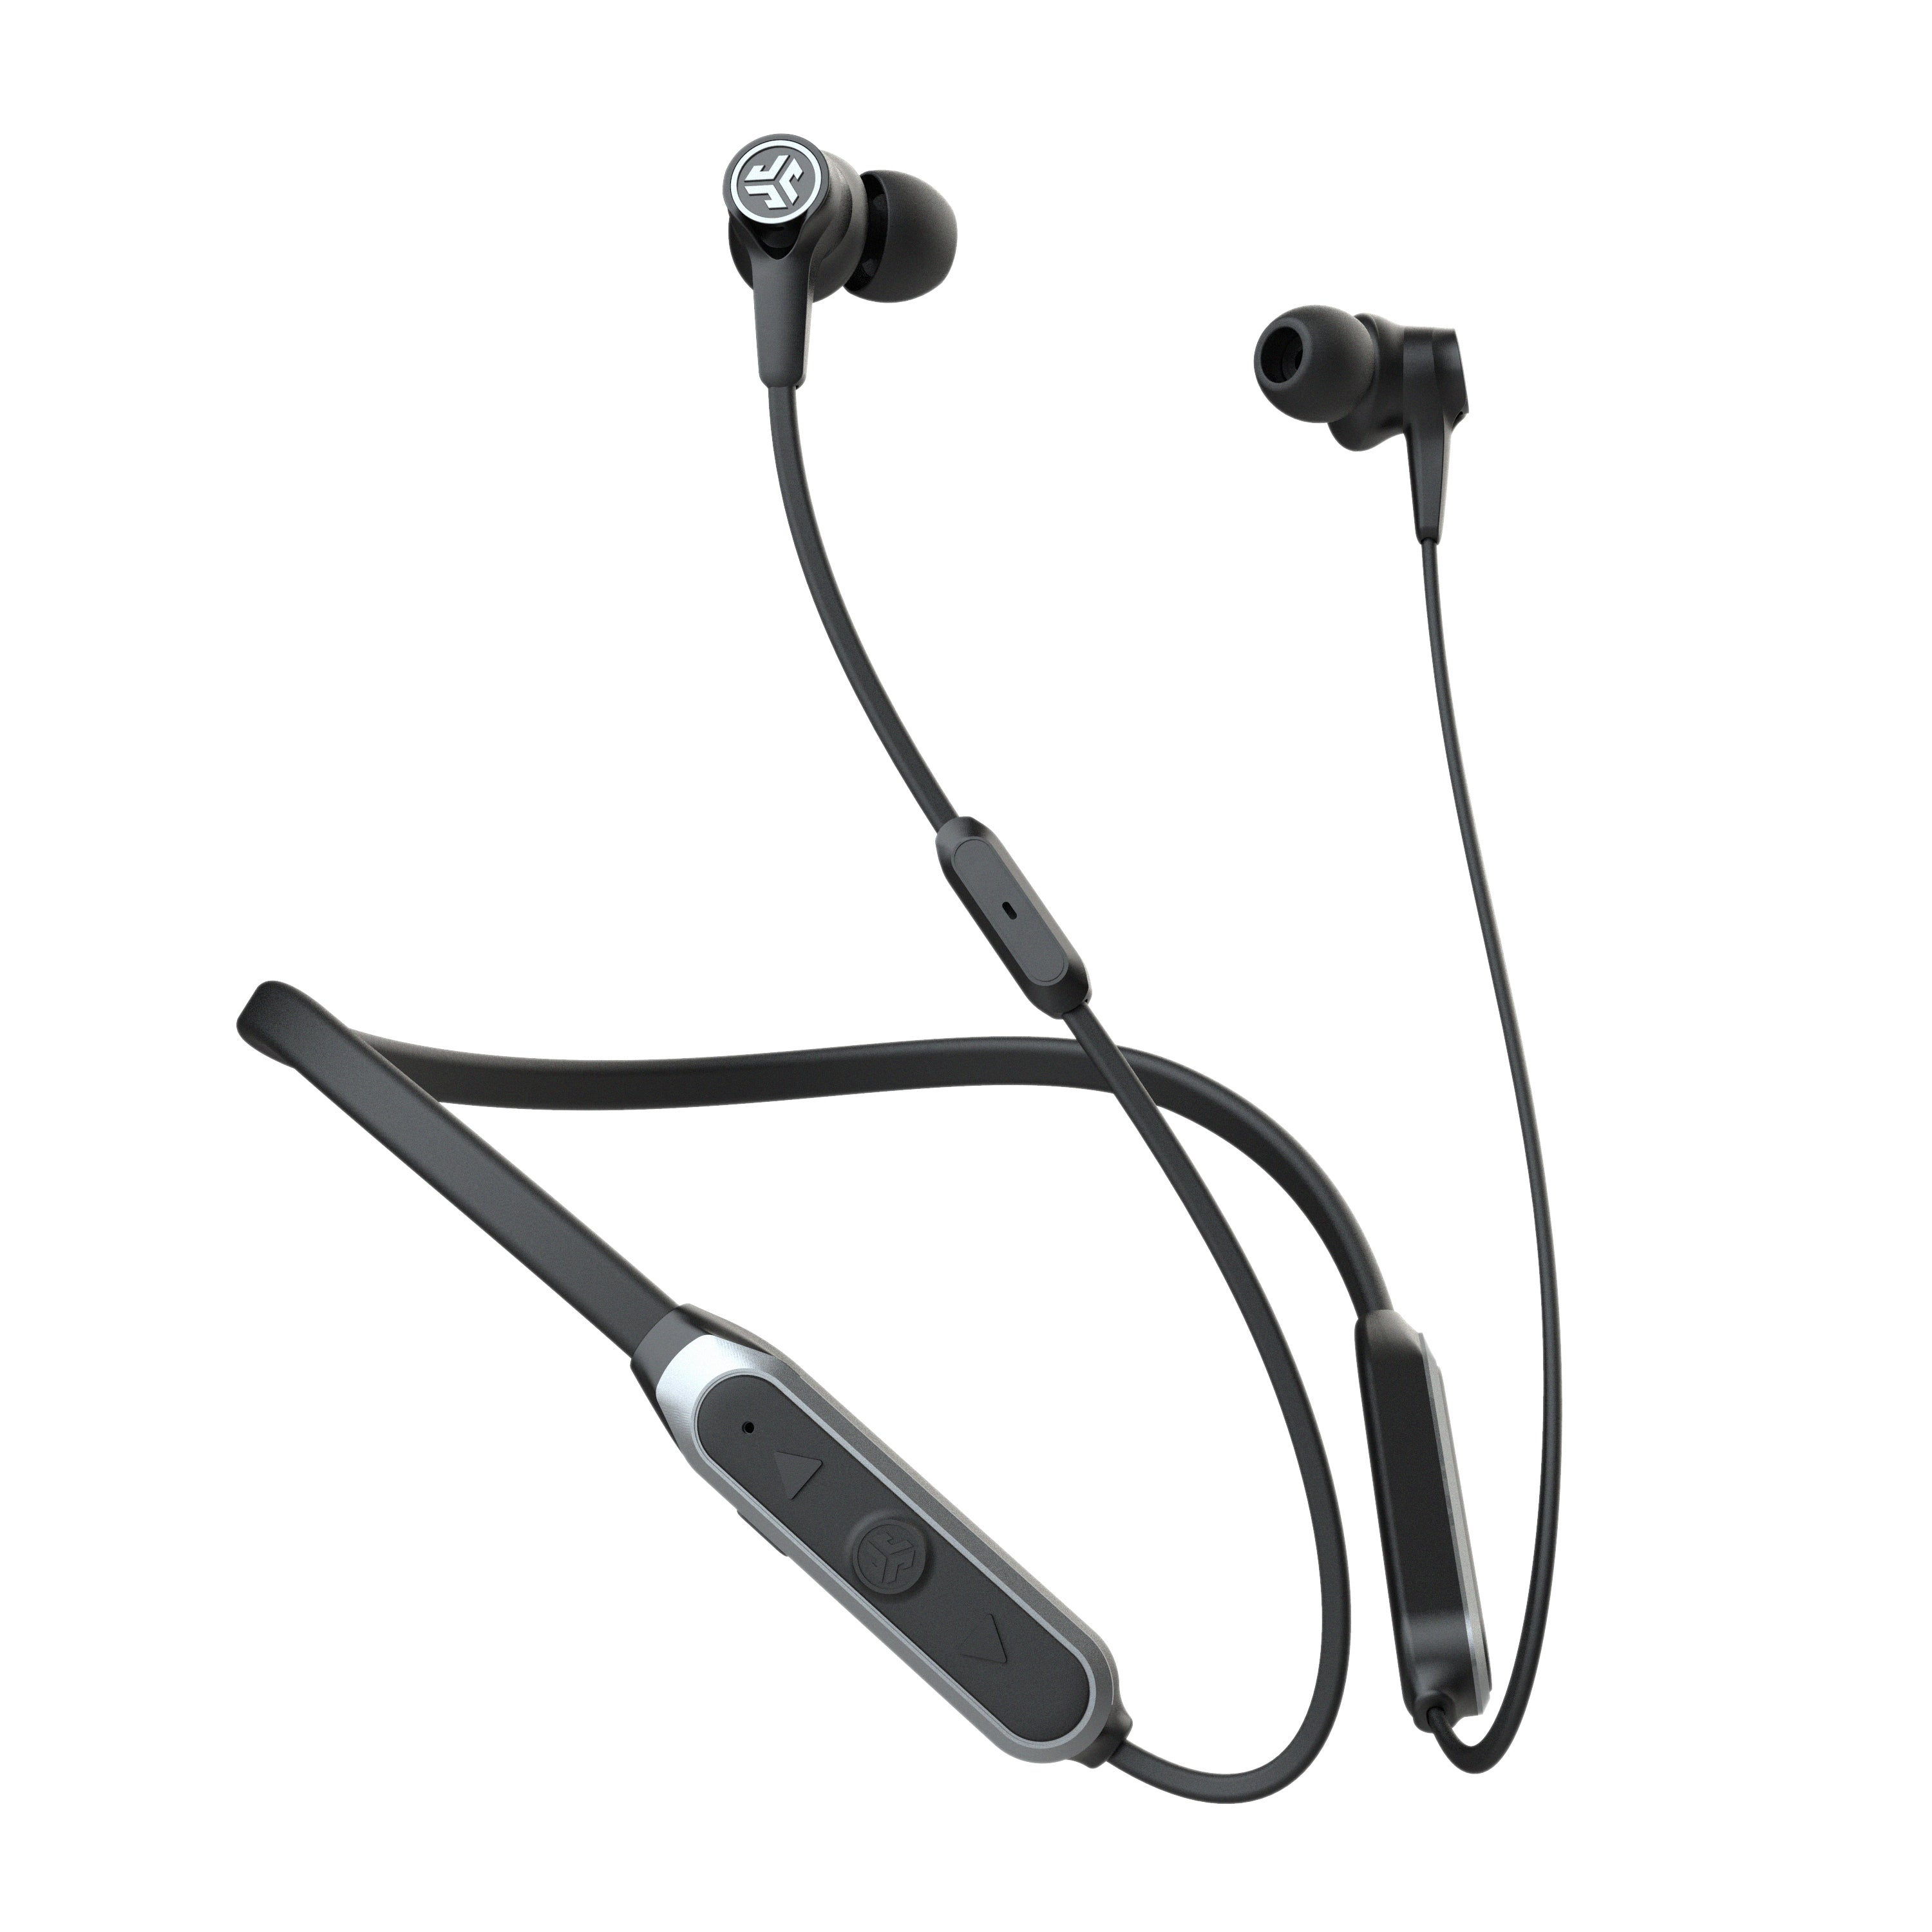 Black Epic Executive Wireless Earbuds with Controls and Cush Fins